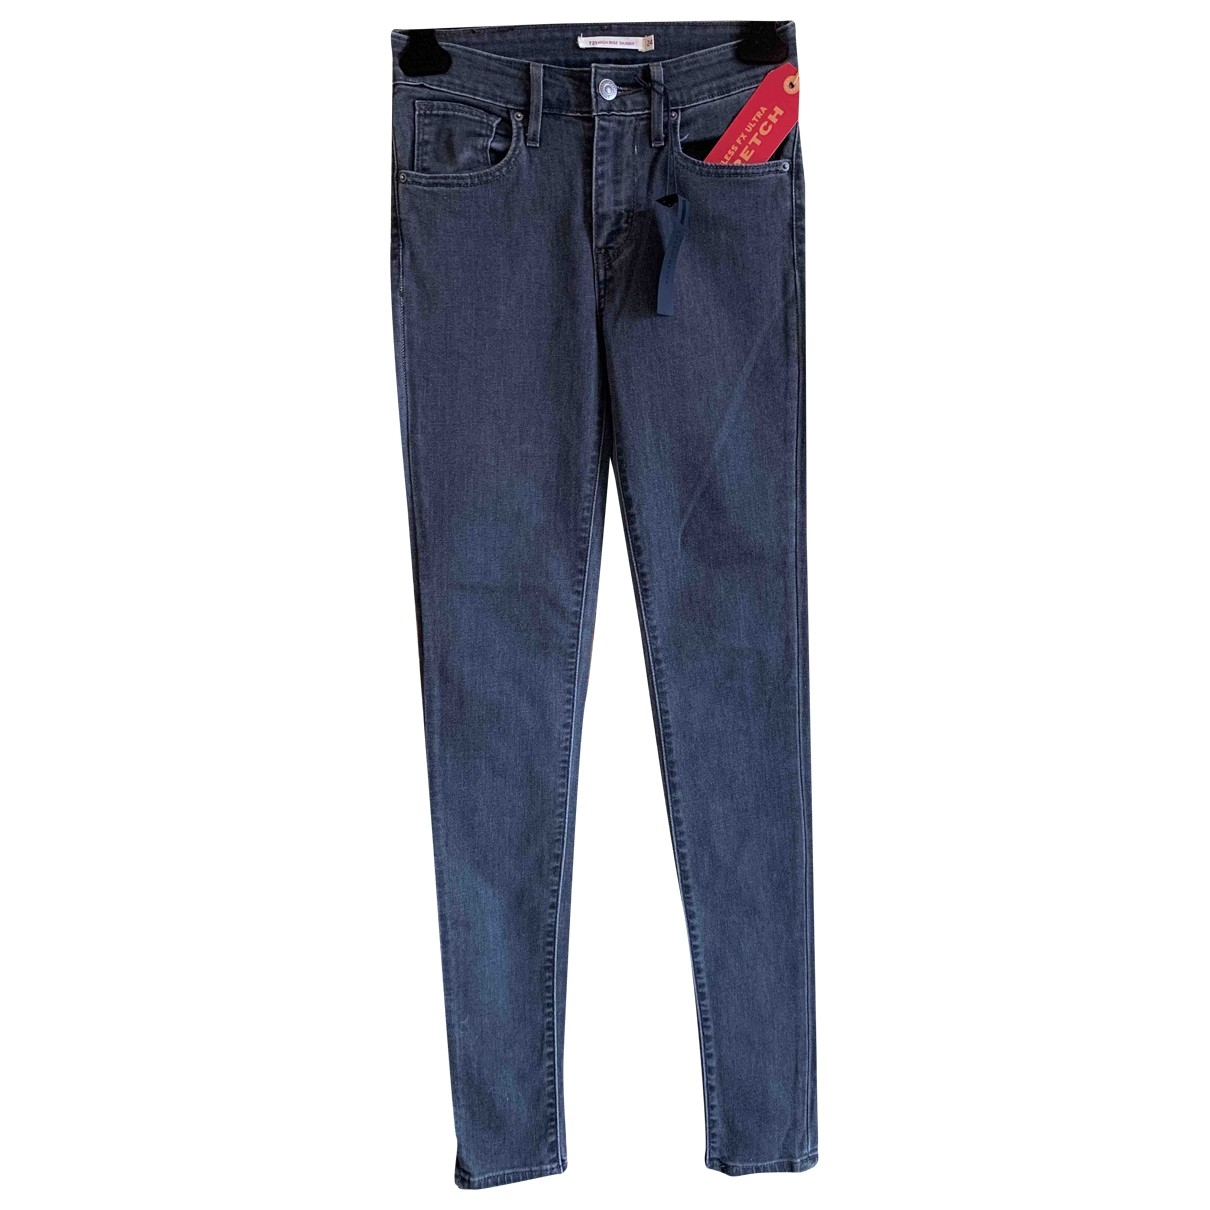 Levi's \N Grey Denim - Jeans Trousers for Women 38 IT